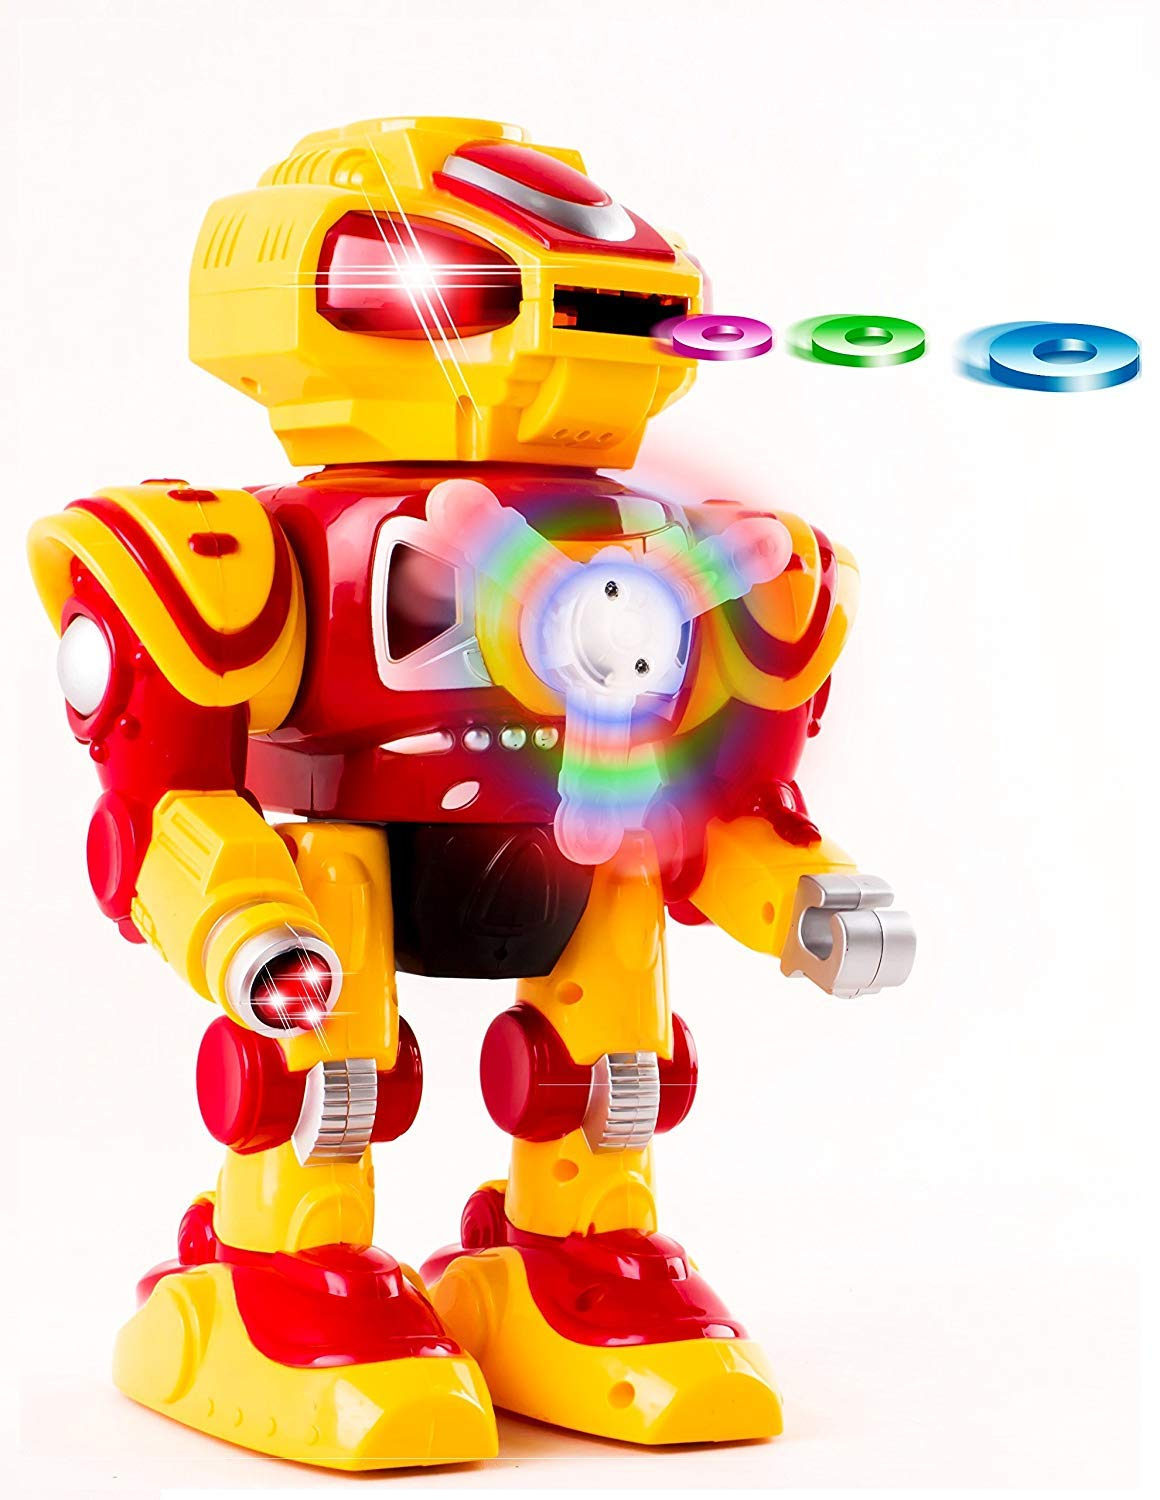 Android Battery Operated Disc Shooting Toy Robot Walking, Flashing Lights, Talking, Spinning, Disc Shooting Toy Robot by Vokodo